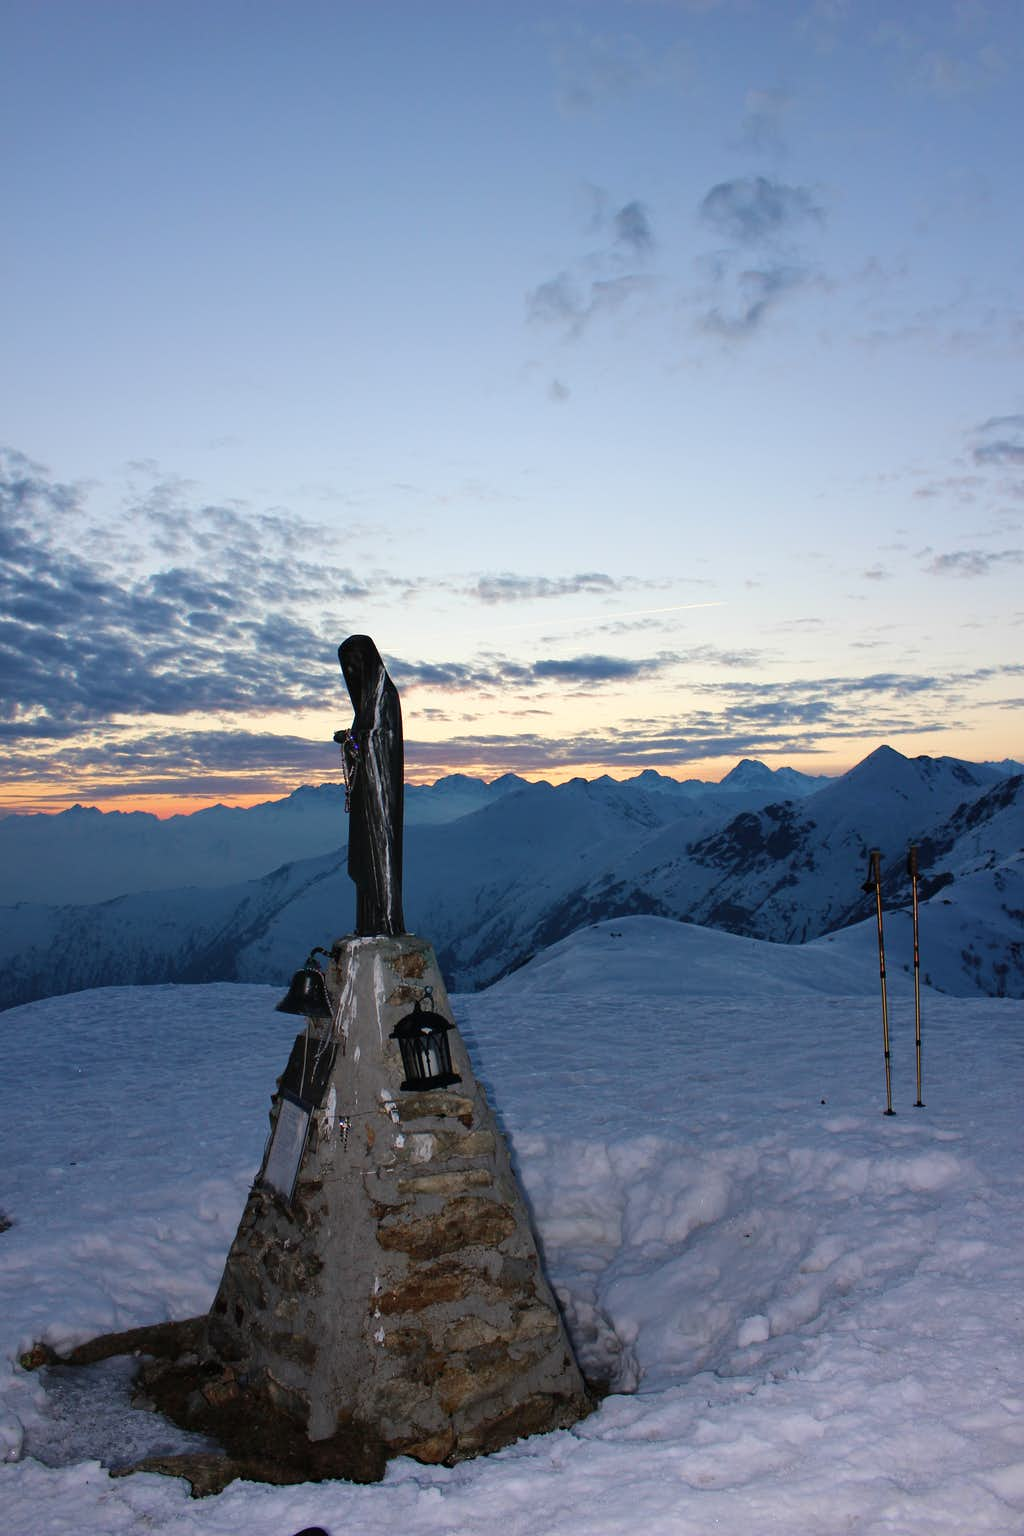 Monte Soglio summit - winter 2020